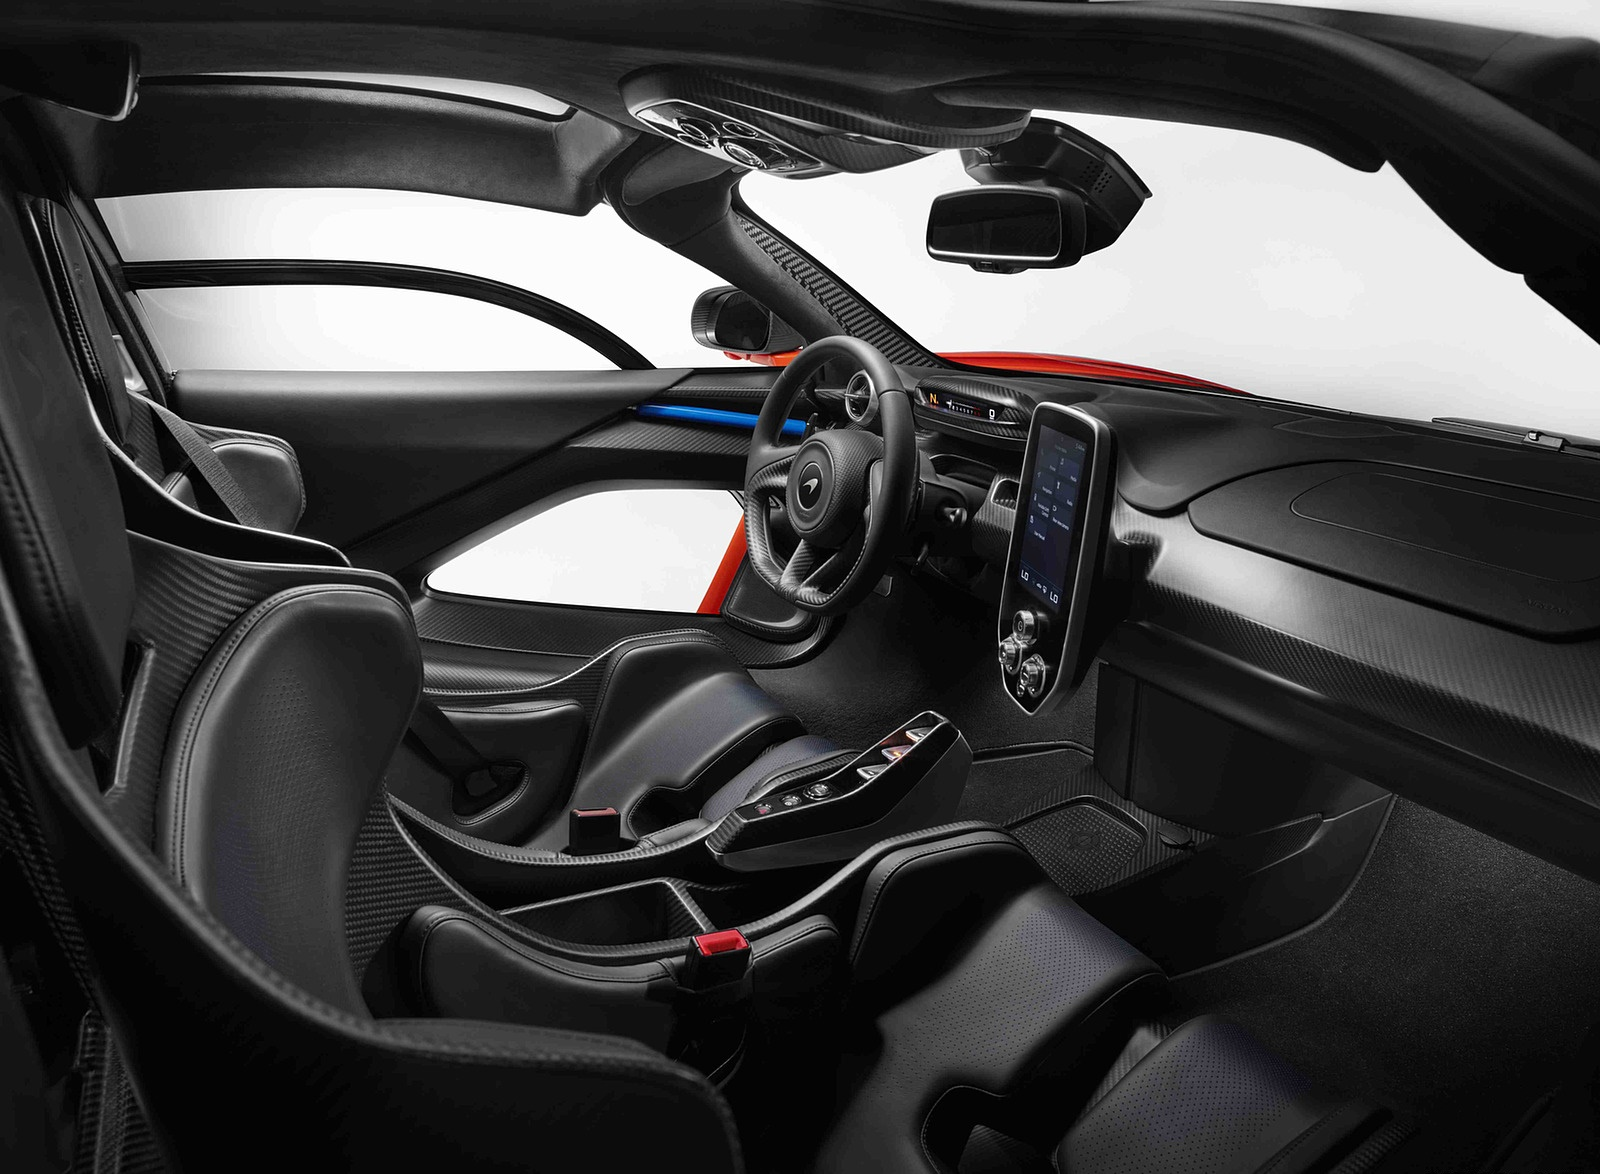 2019 Mclaren Senna Interior Cockpit Wallpapers 99 Newcarcars